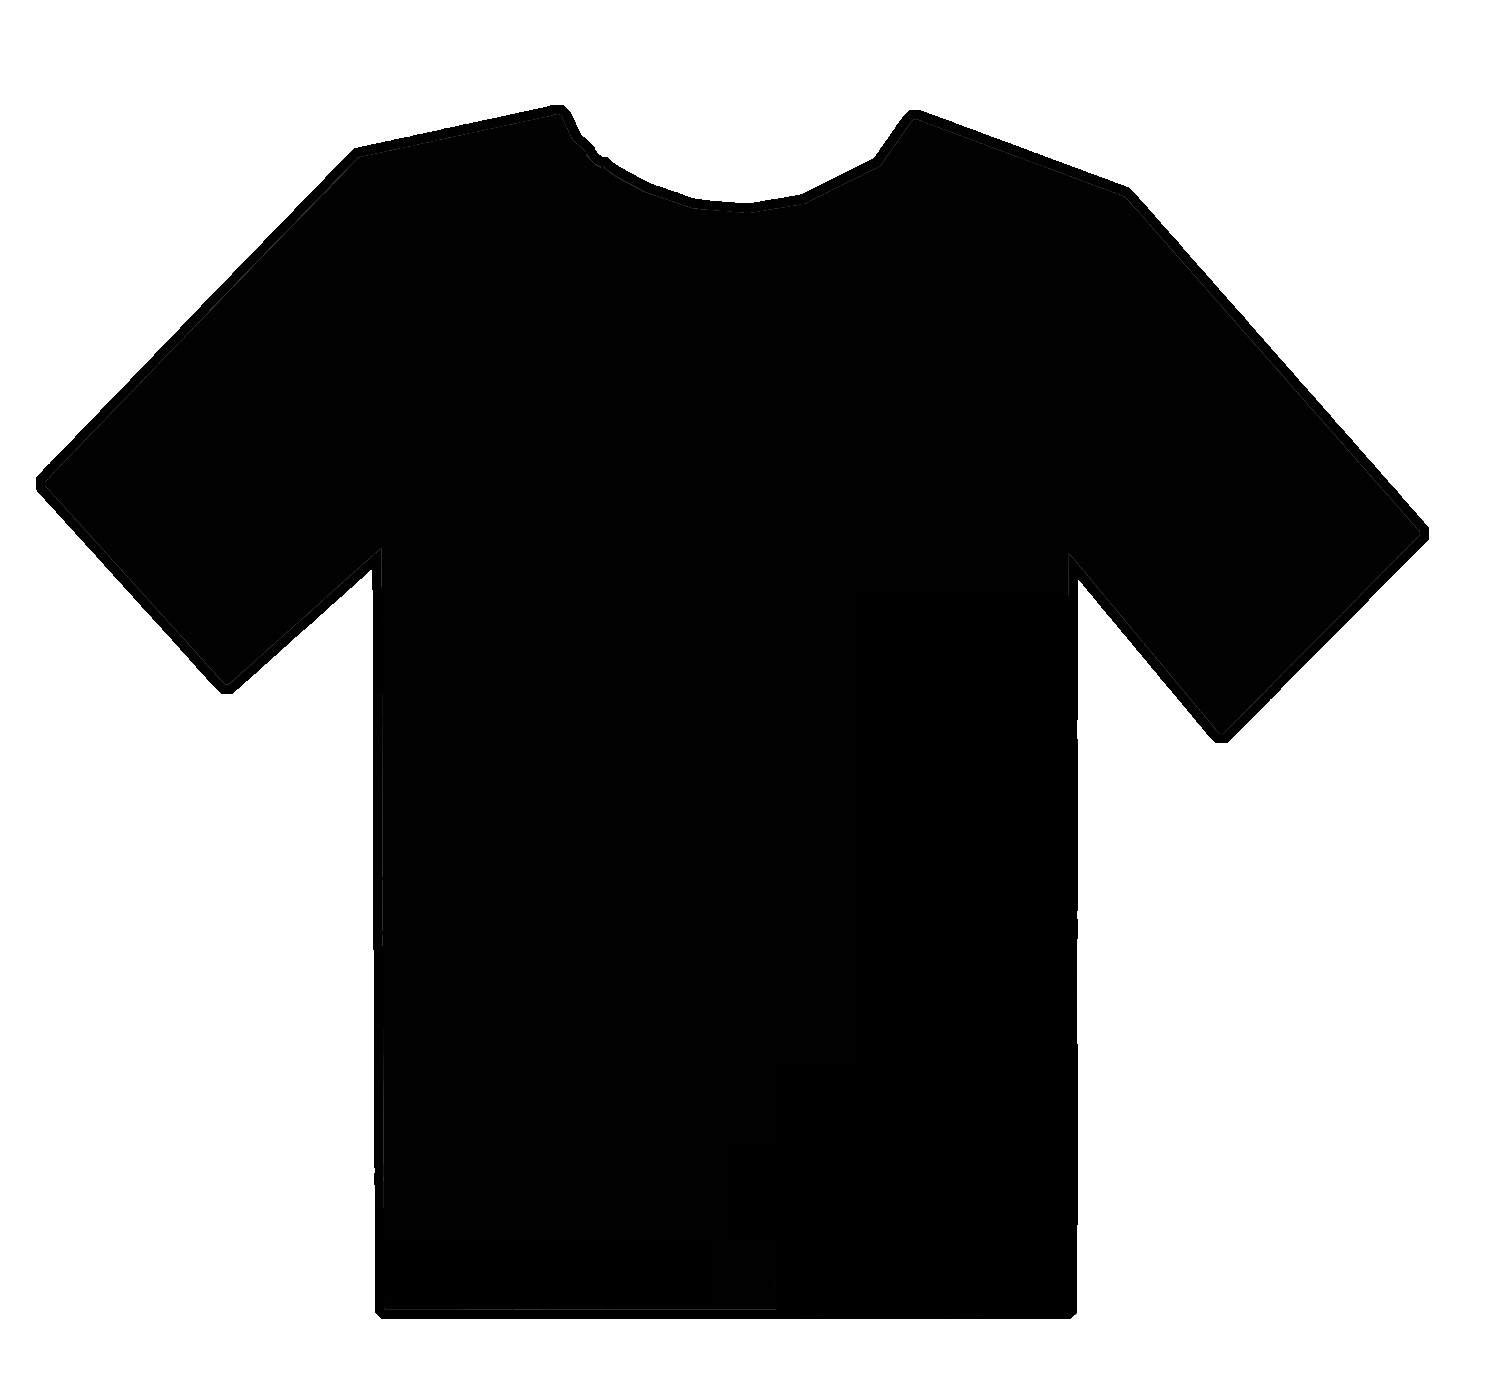 Blank t shirt image clipart best for Blank t shirt design template